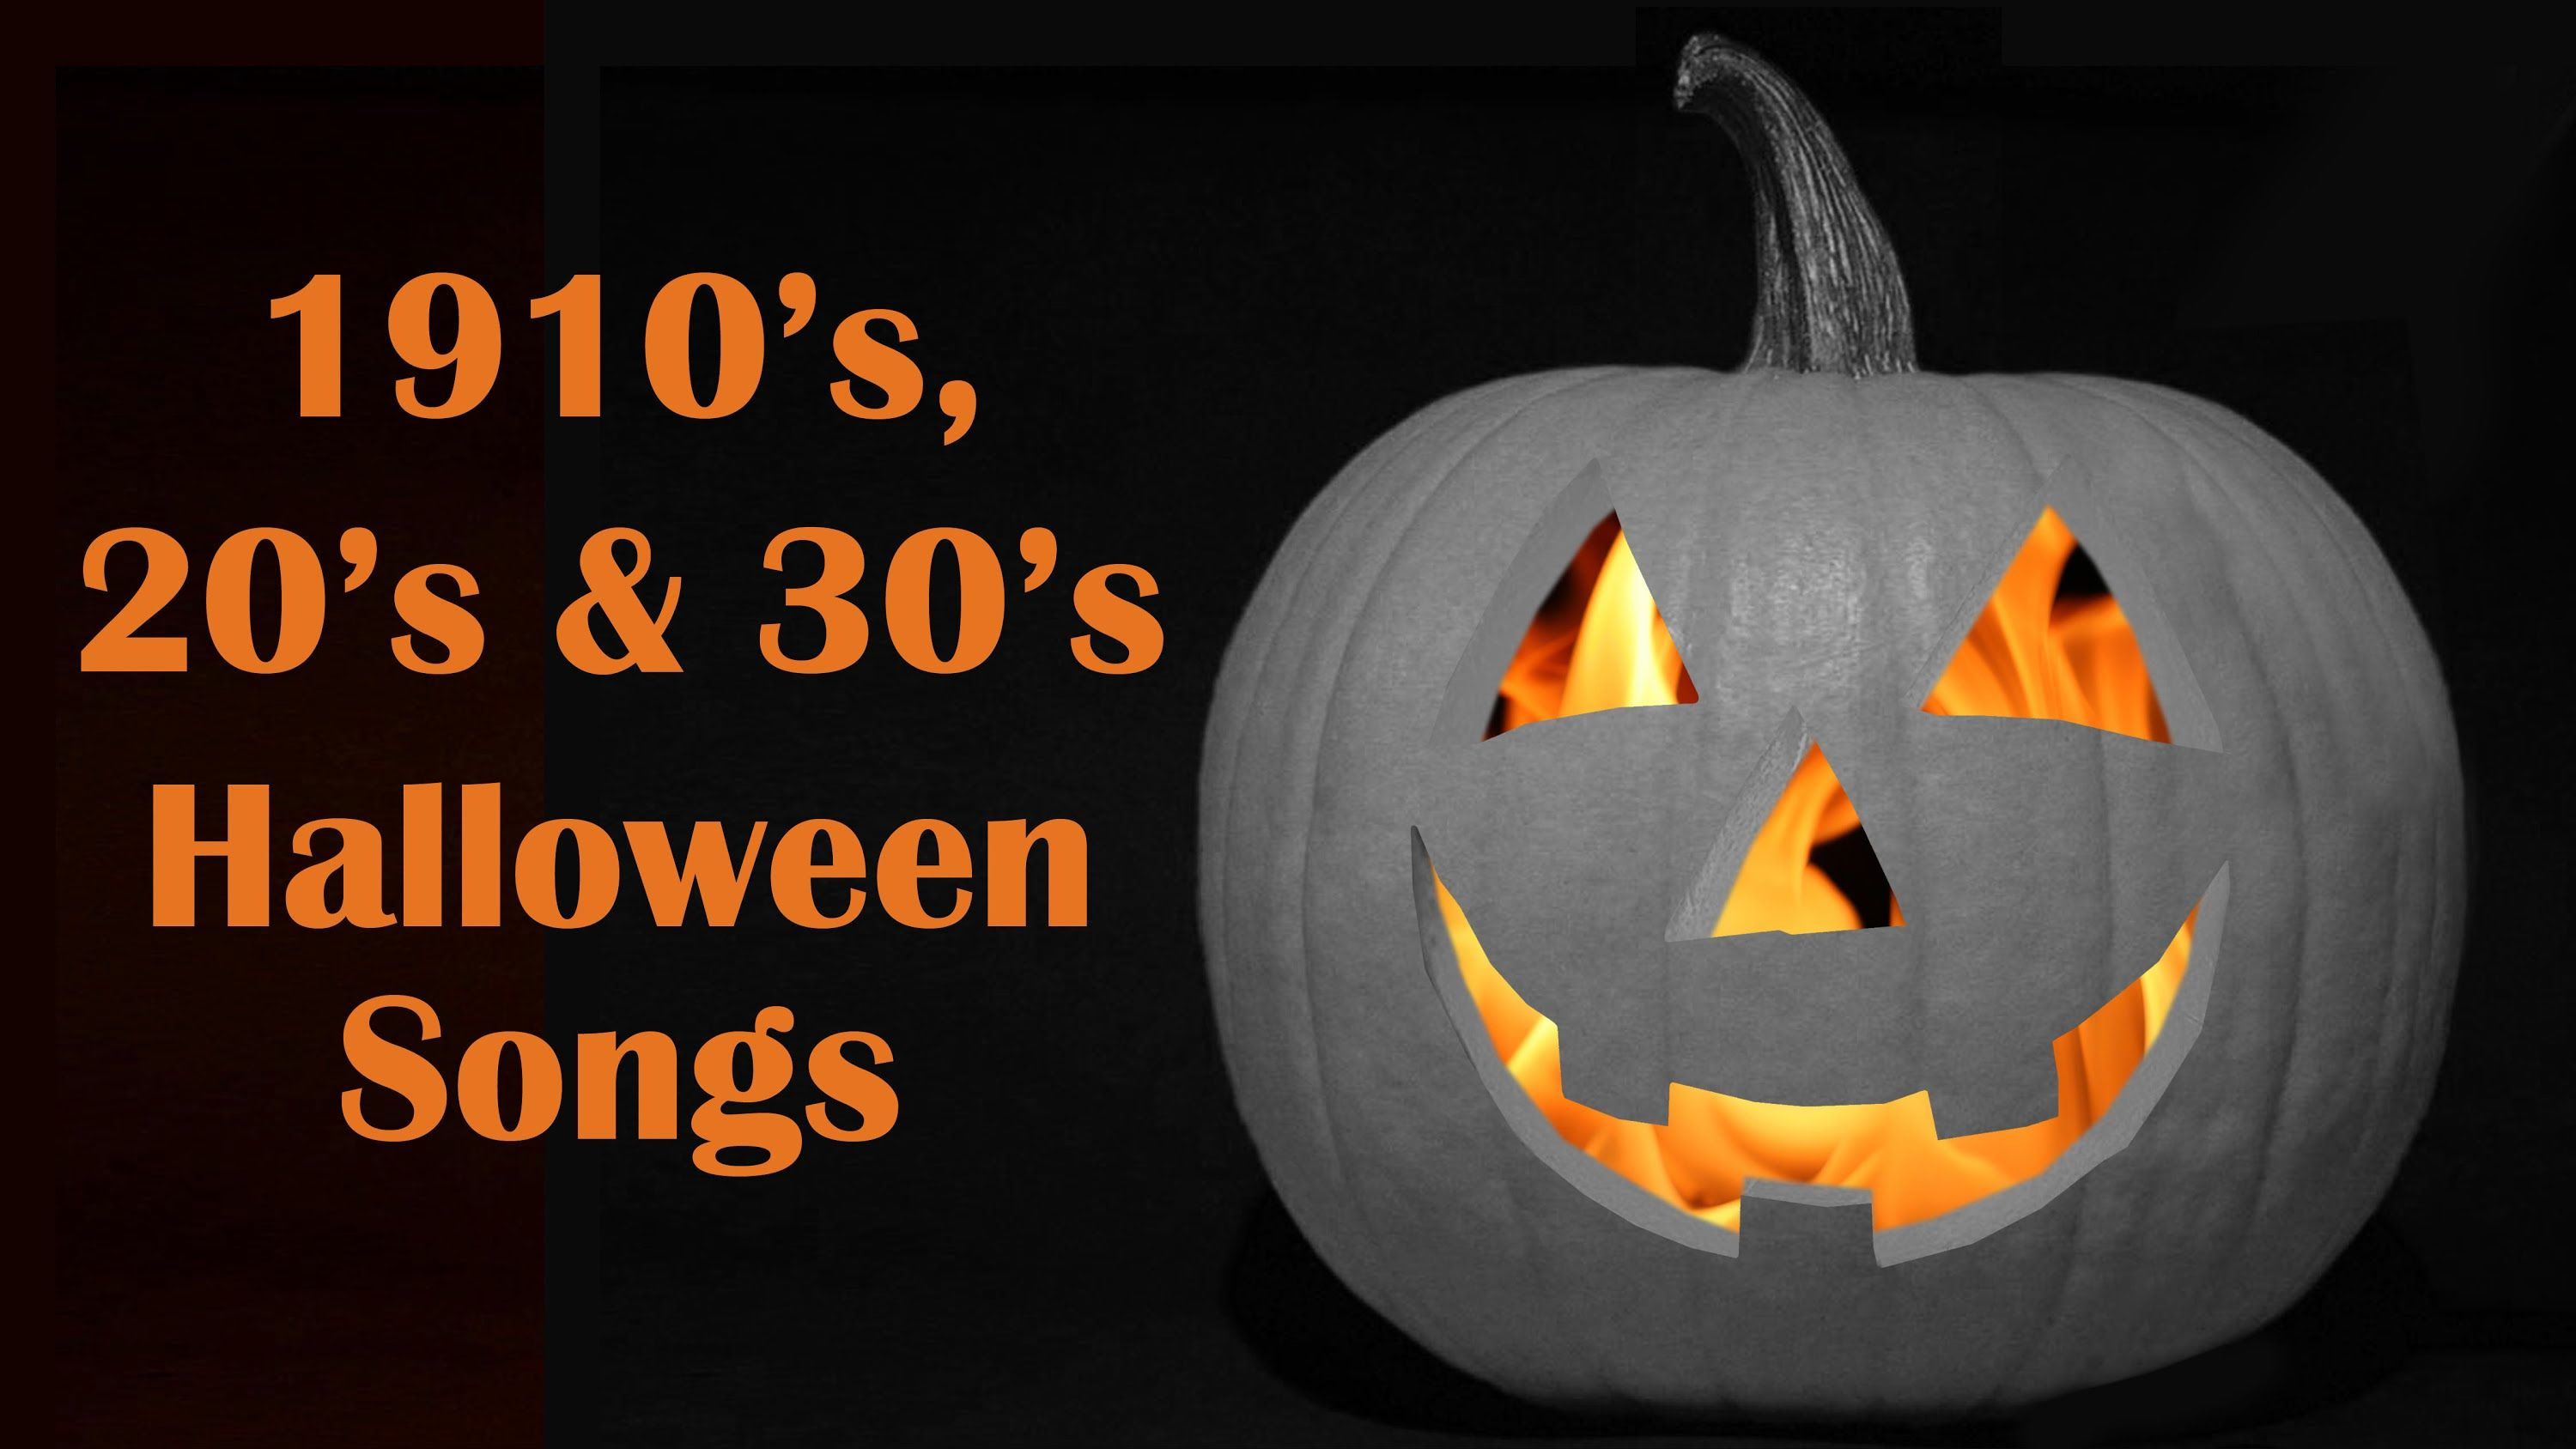 13 Vintage Halloween Hop Songs from the 50's & 60's Full